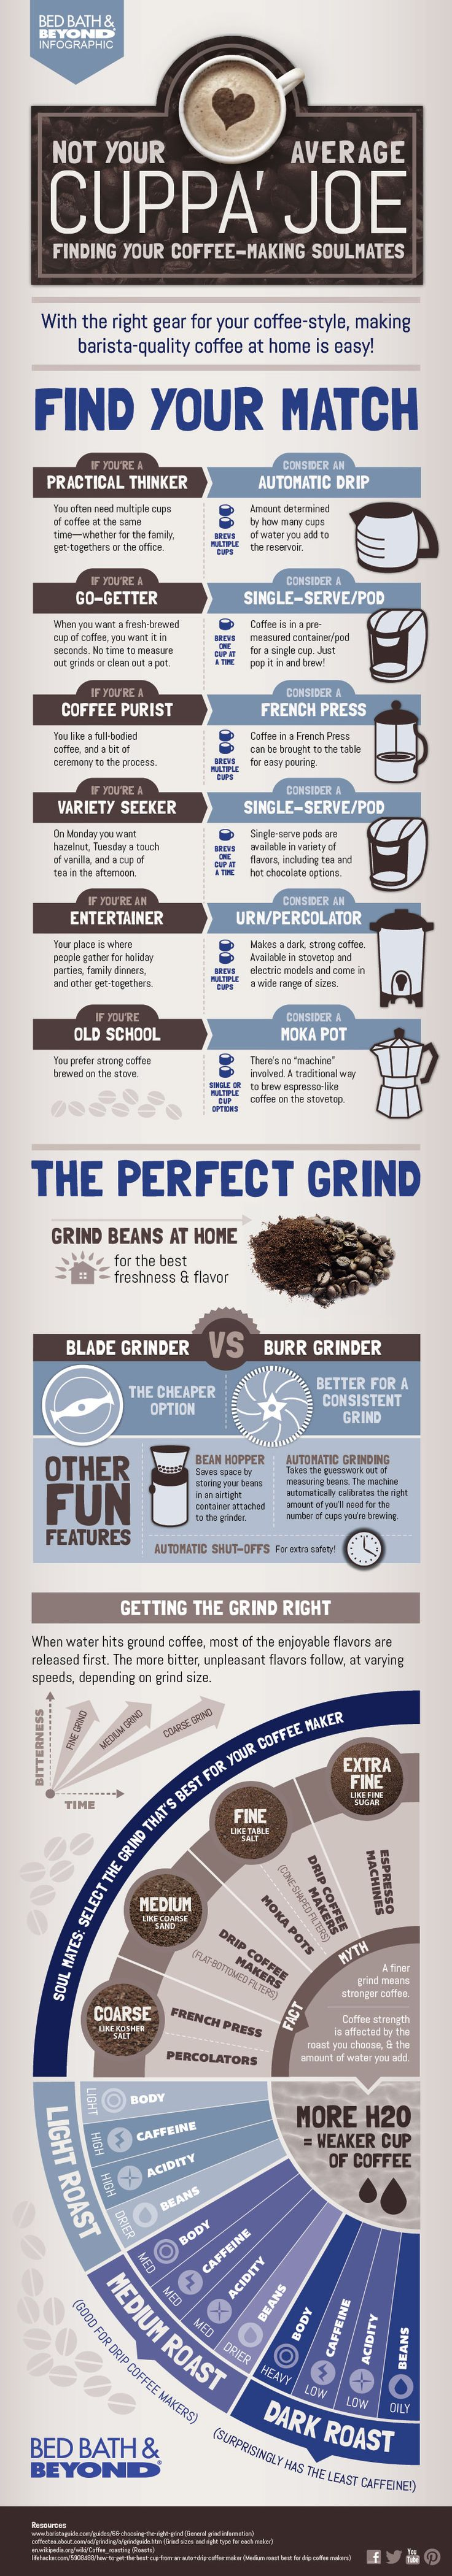 What Kind of #Coffee Person are You? Find out more with this #infographic - http://www.finedininglovers.com/blog/food-drinks/coffee-infographic/